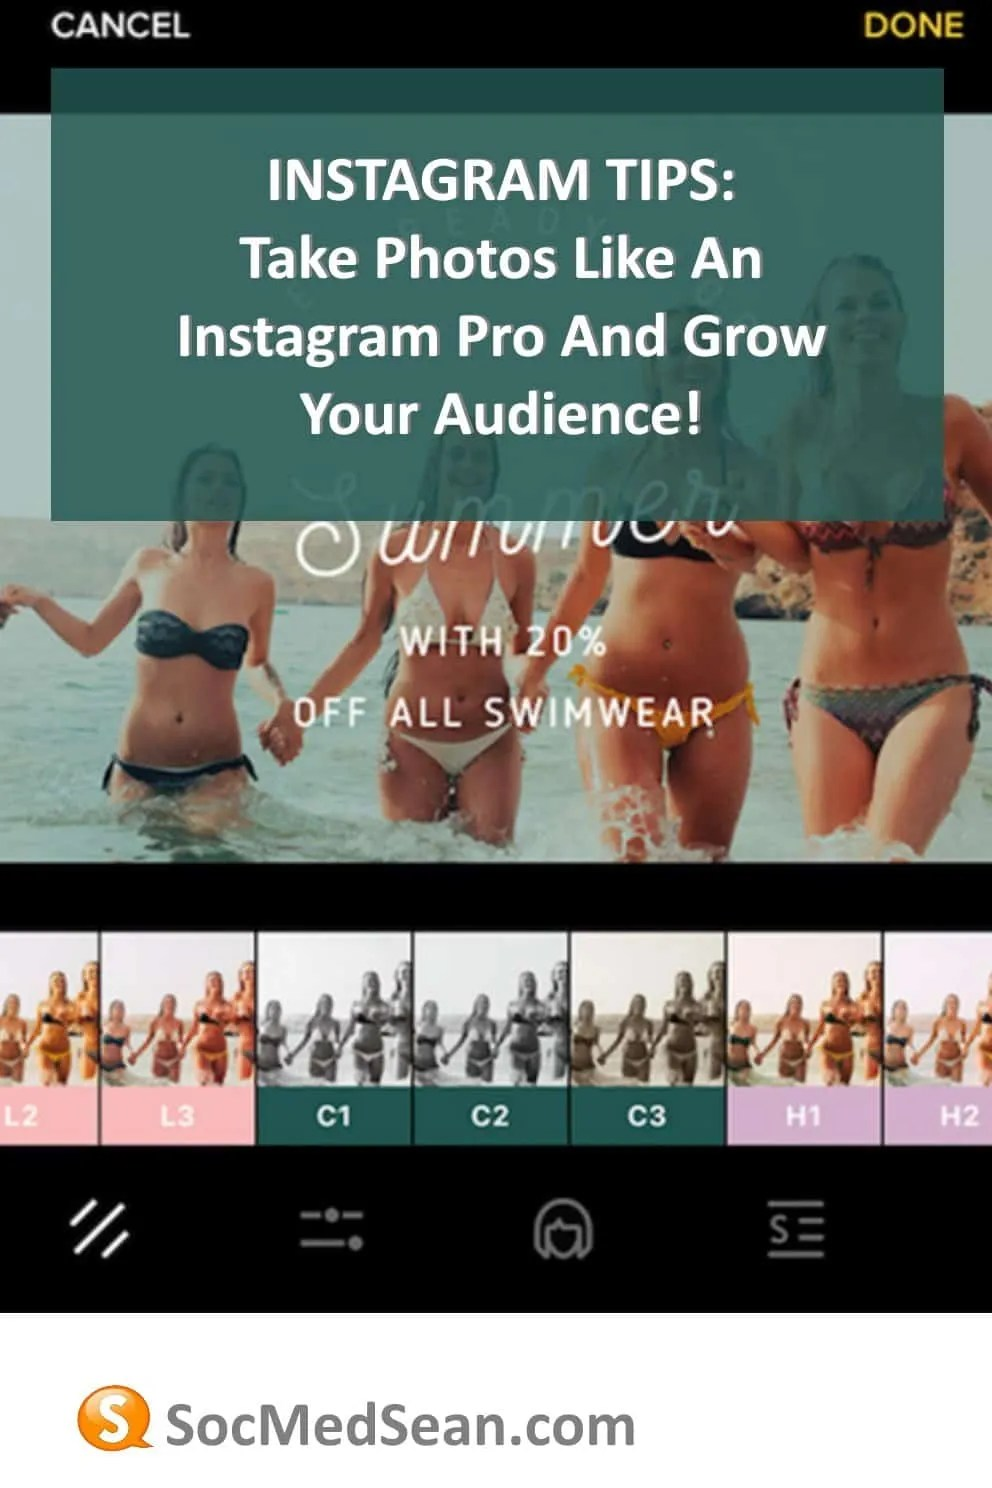 Take Instagram Photos Like A Pro And Grow Your Audience